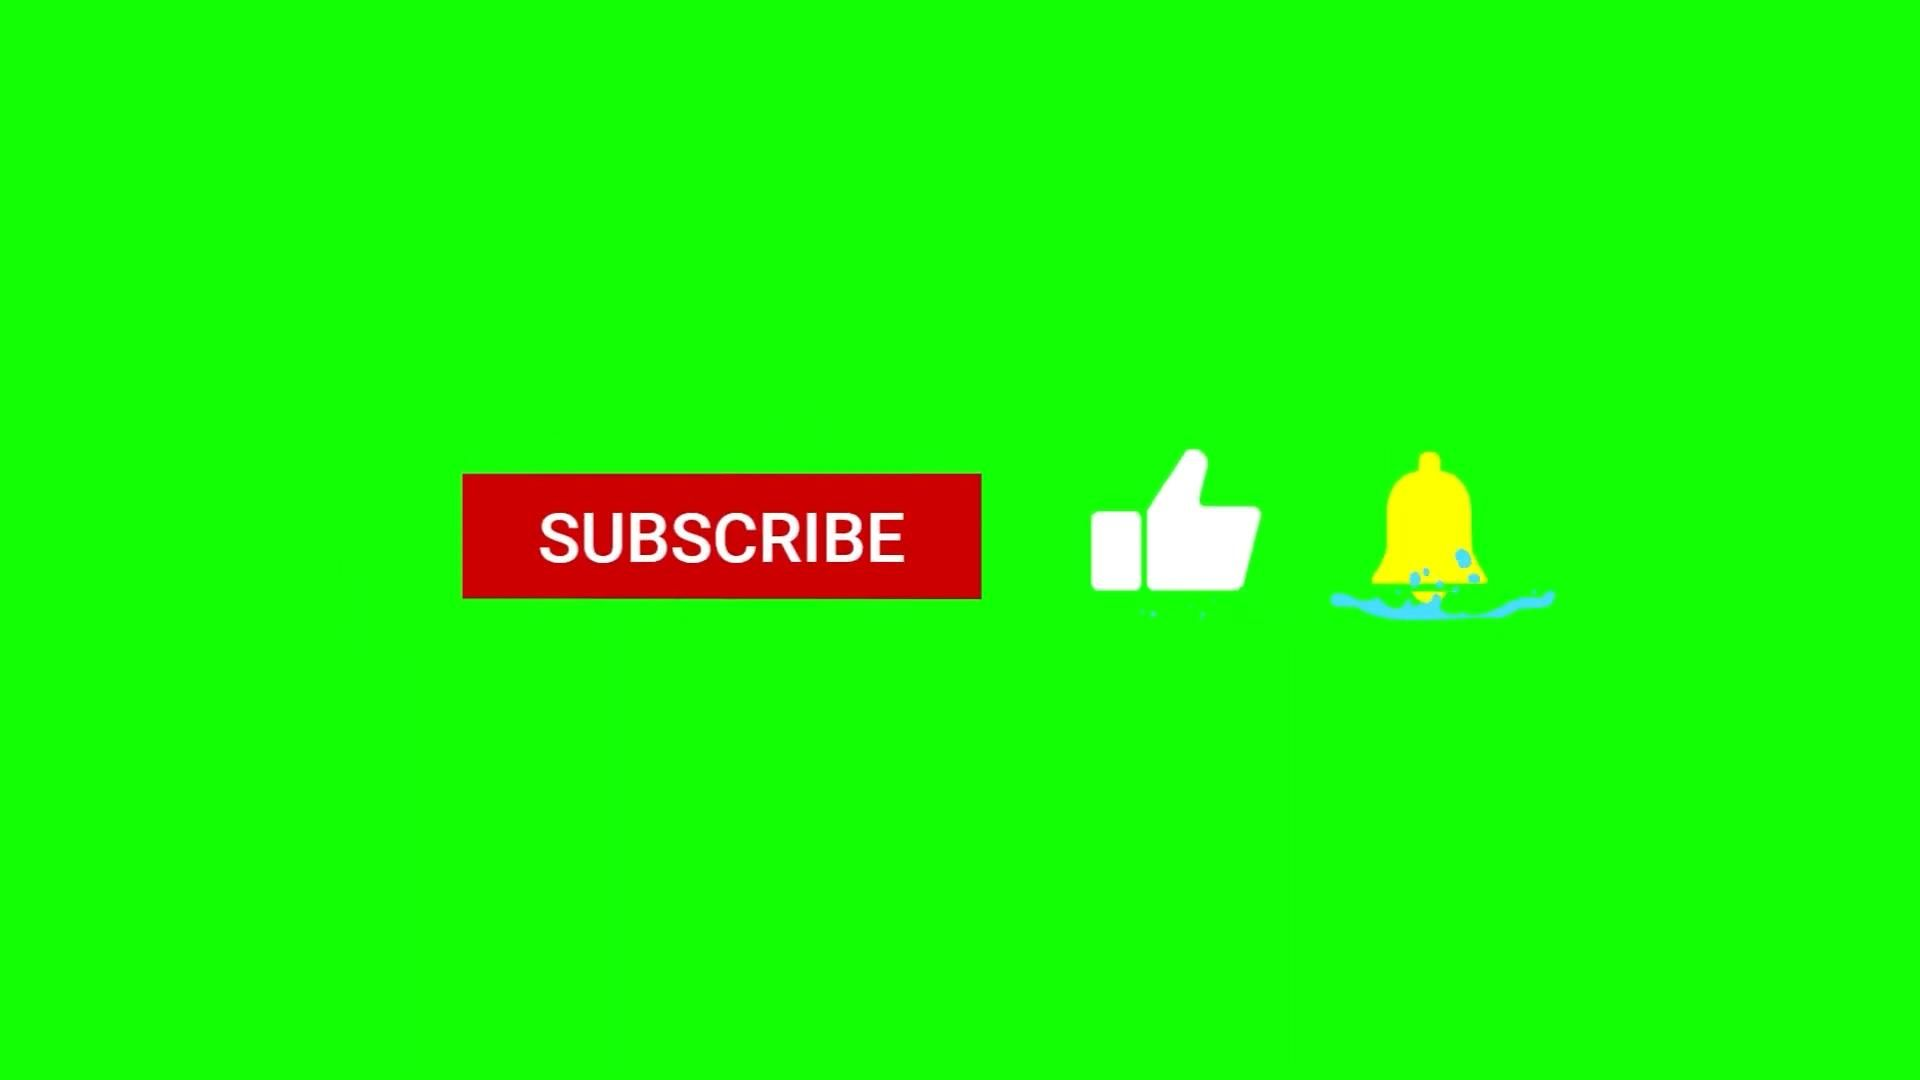 Green Screen Subscribe Button No Copyright Free Download